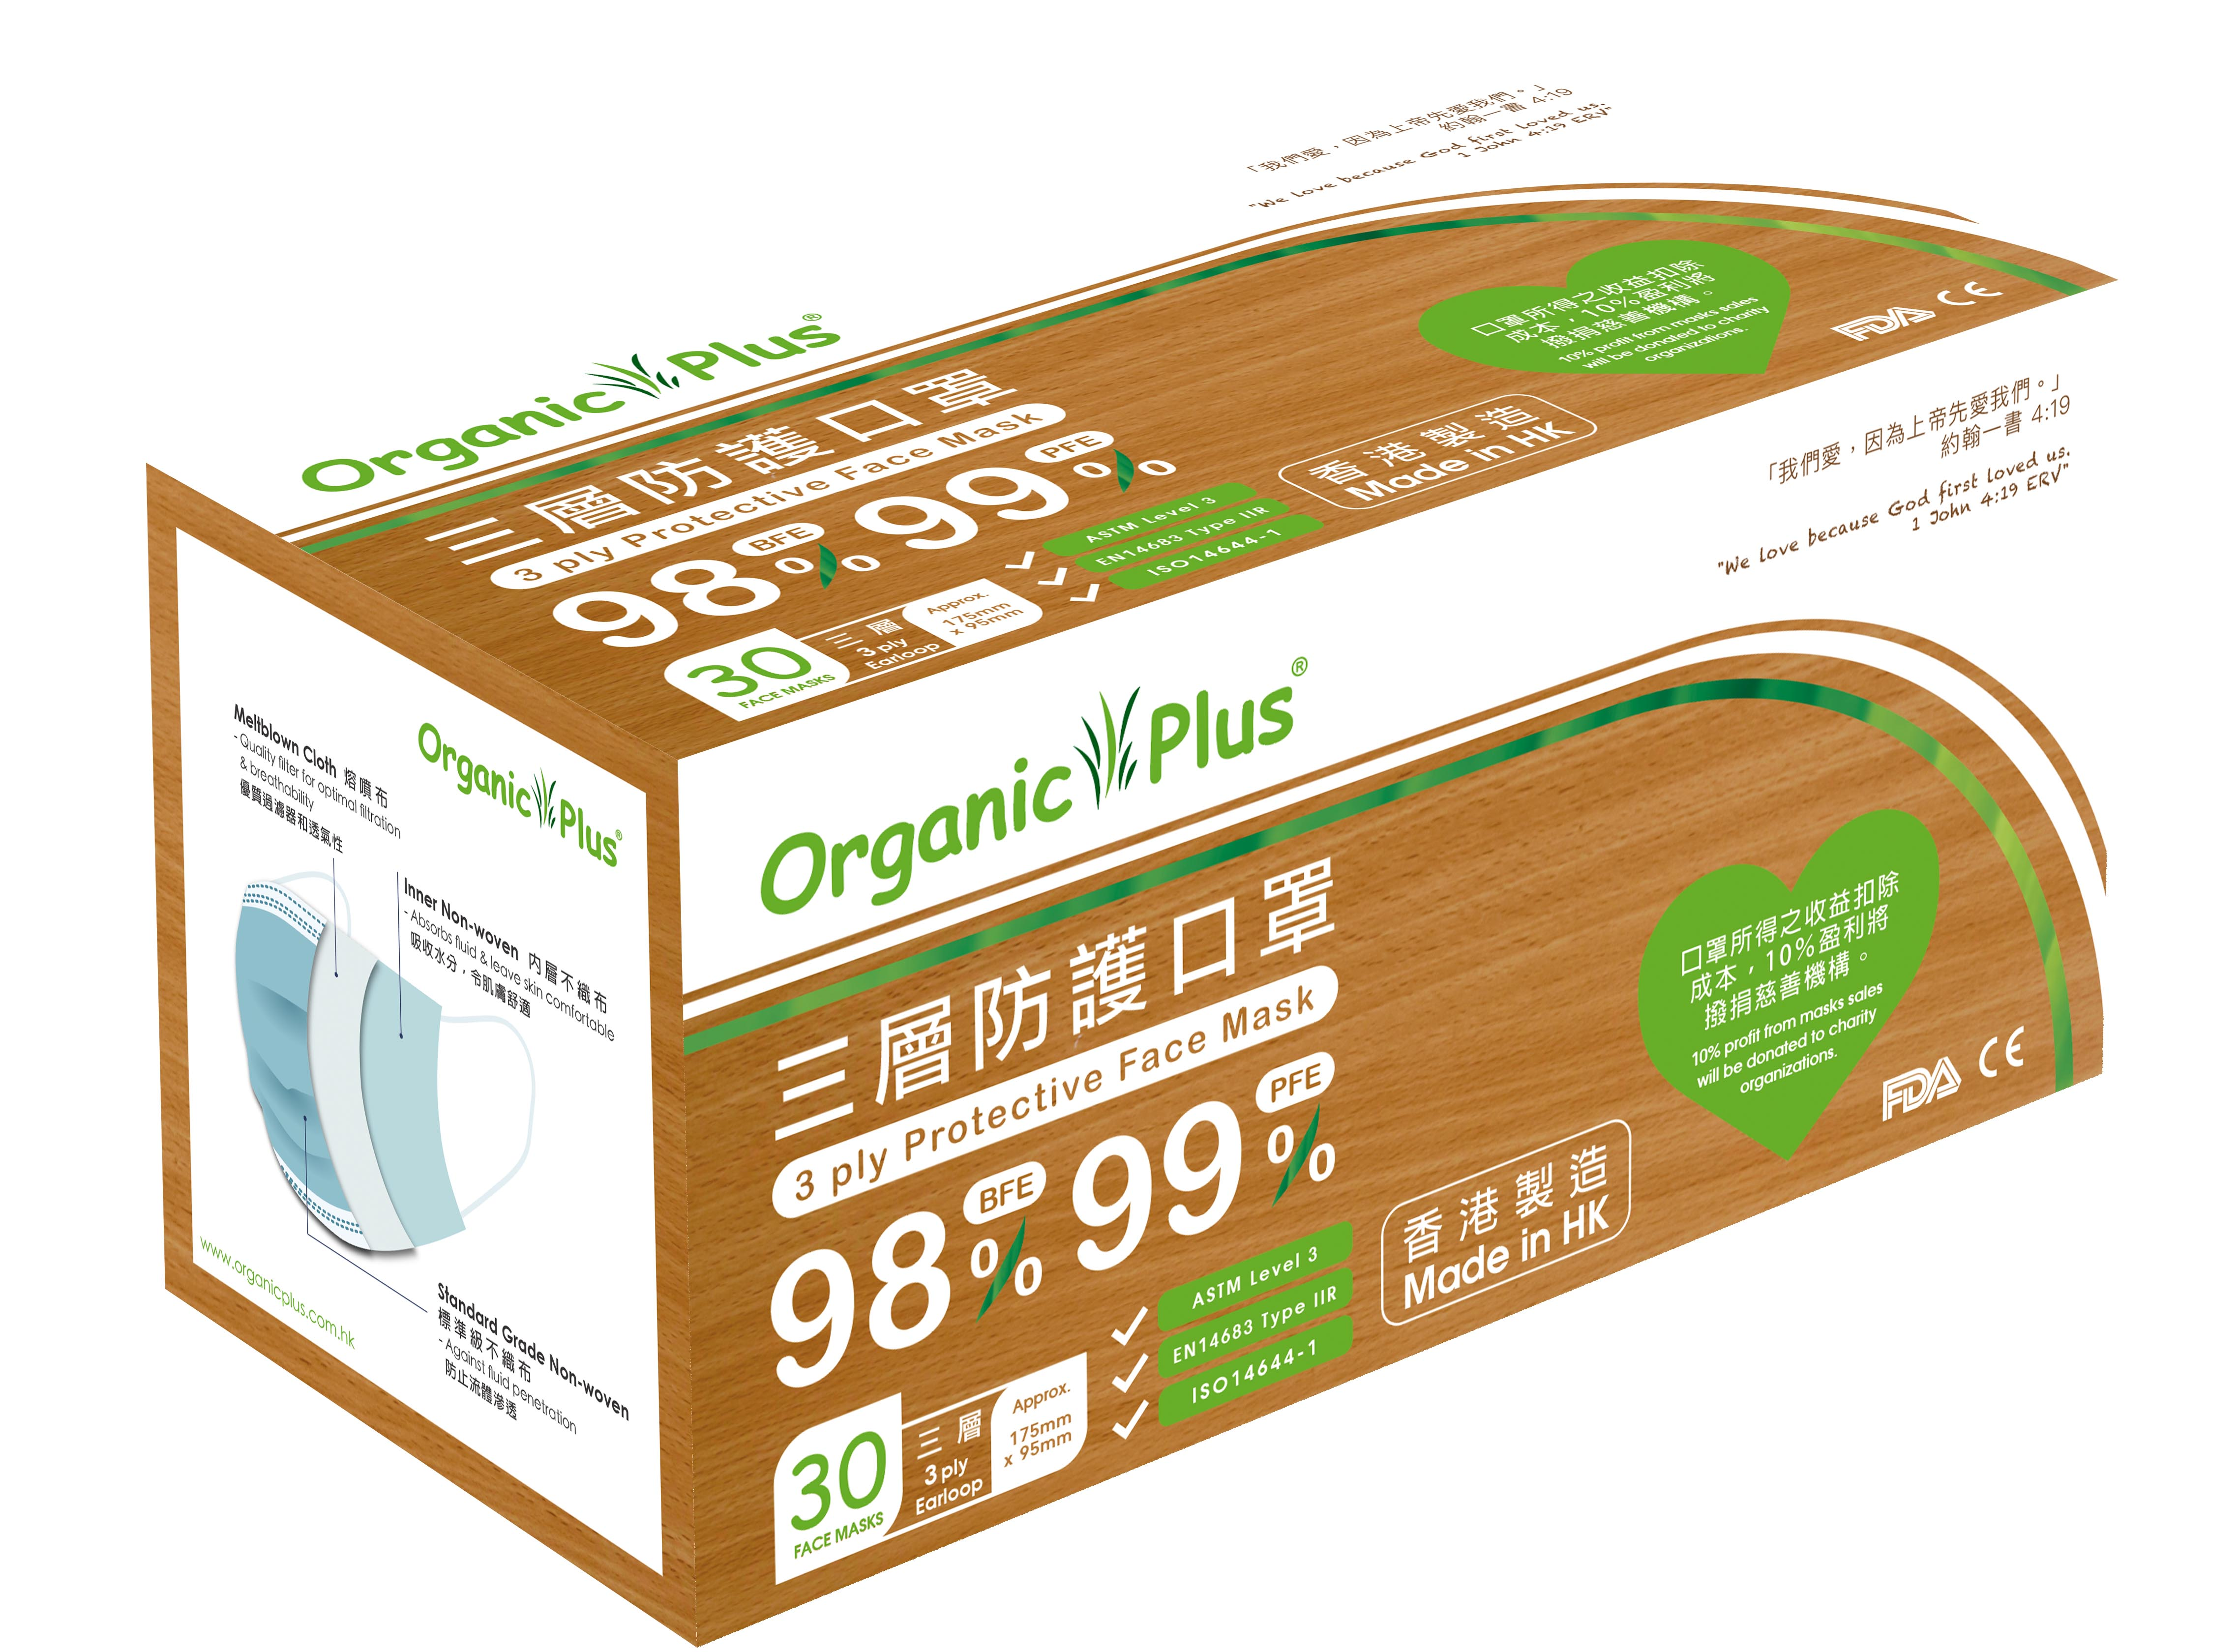 Sales will be temporarily suspended until mid-August. 【$25 discount for each 7 boxes+Free Delivery】Organic Plus 3ply Protective Face Mask (30 Face Masks) at least 7 boxes